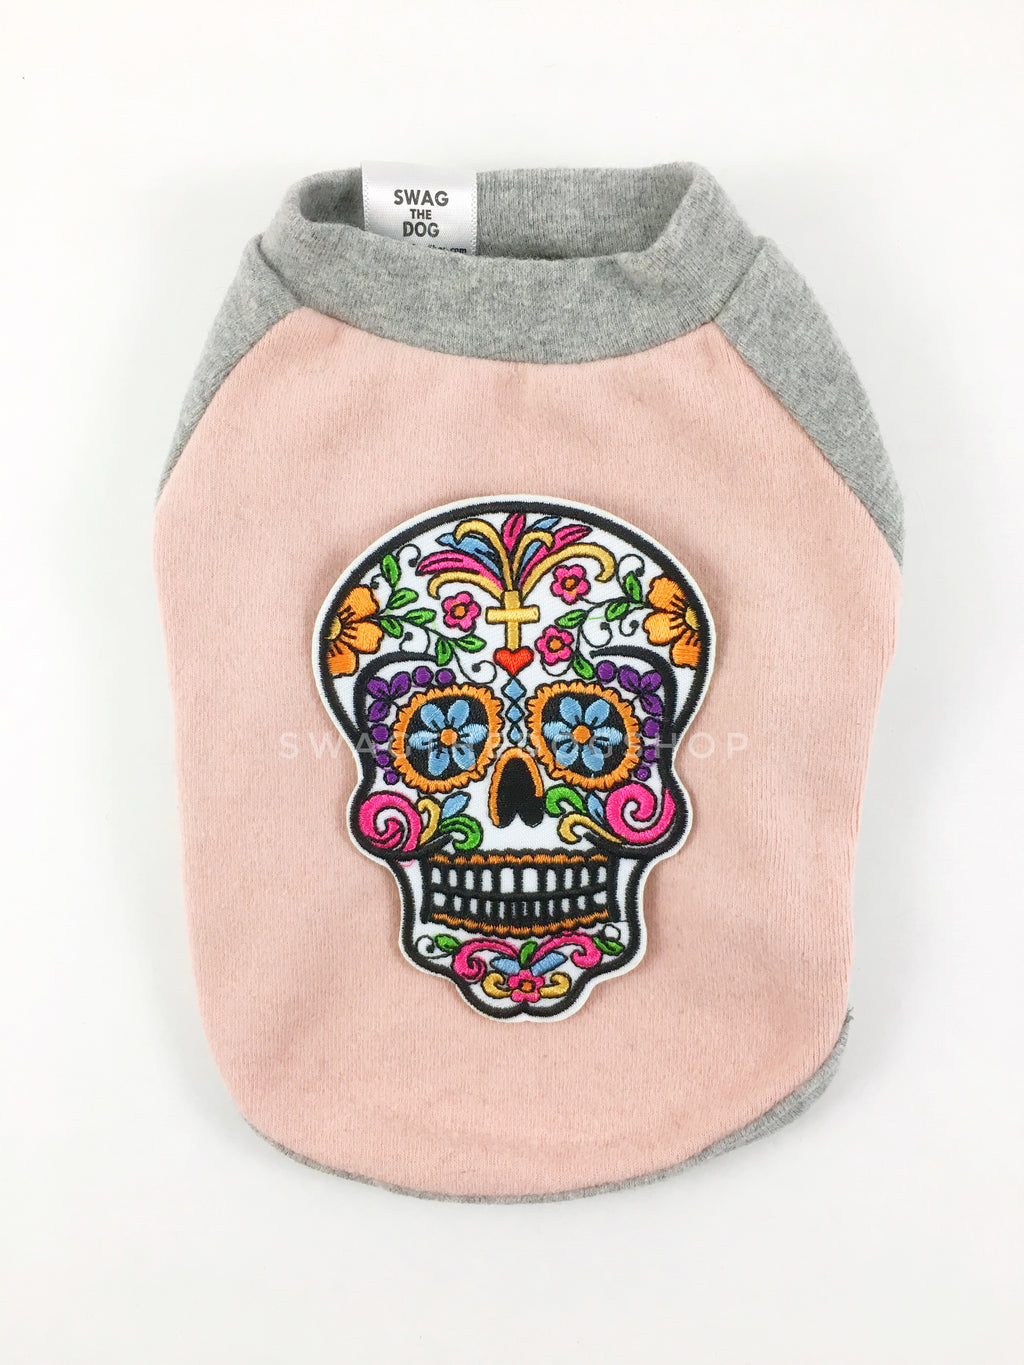 Pink and Gray Centerfield Tees T-Shirt - Patch Add-on of Day of Dead Skull. Pink and Gray T-Shirt